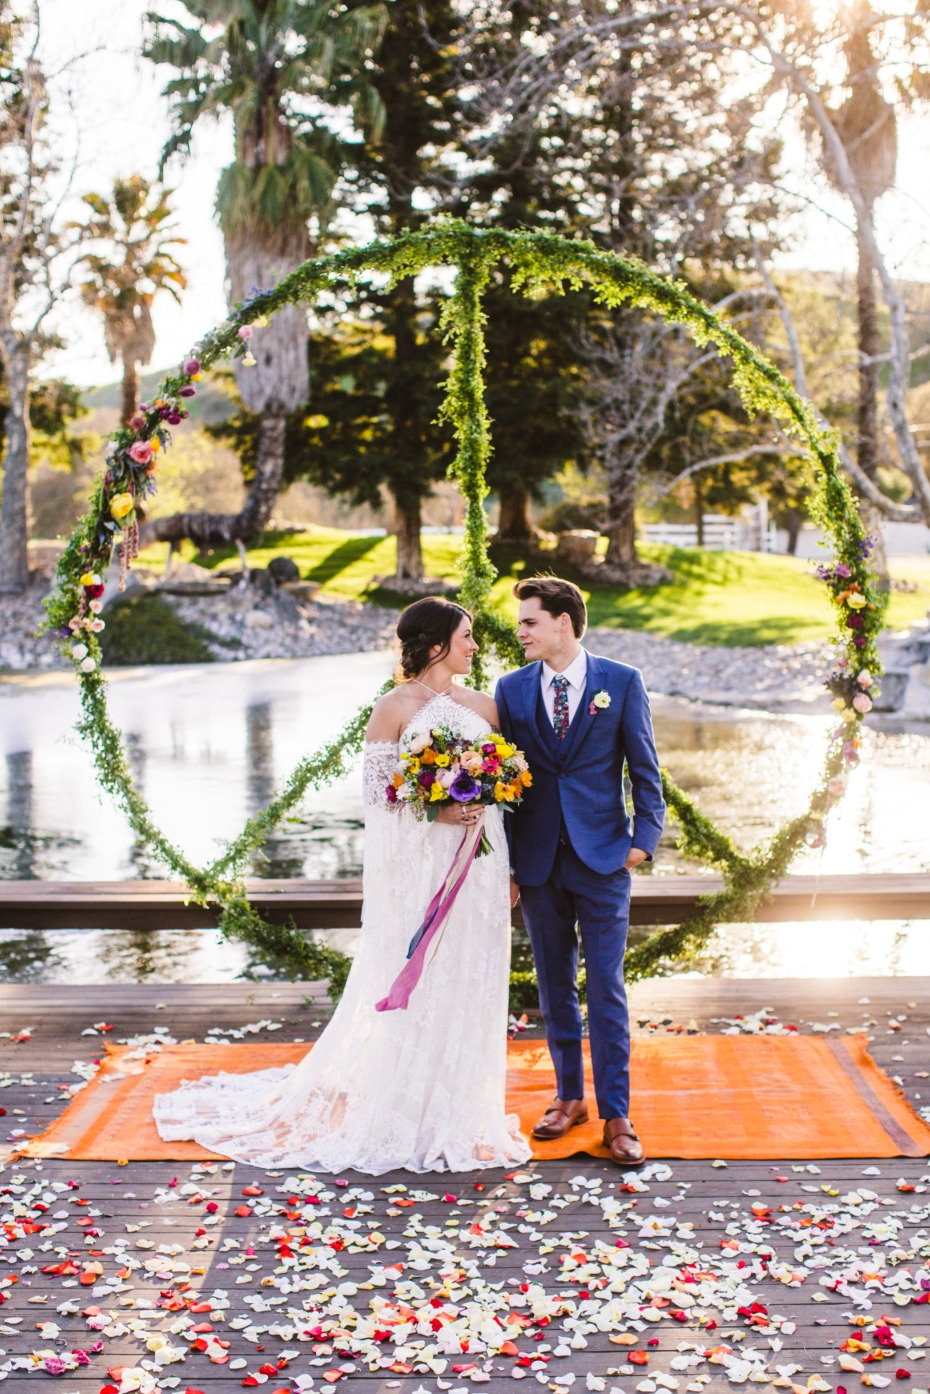 giant greenery peace sign wedding backdrop